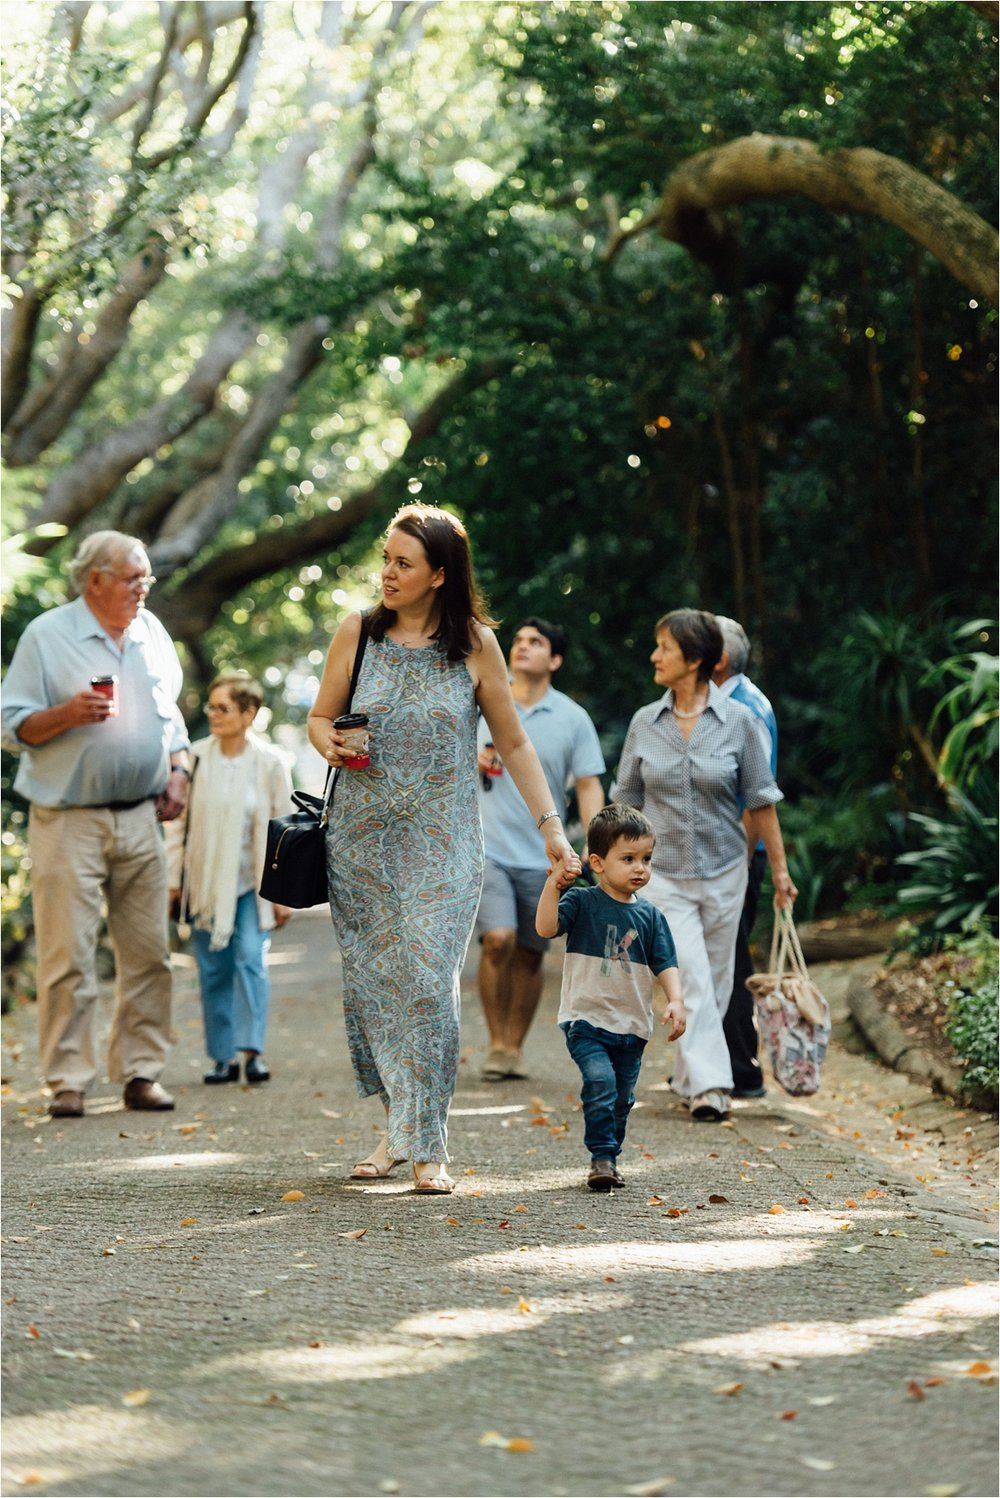 thephotfarm_family_session_Kirstenbosch_0049.jpg